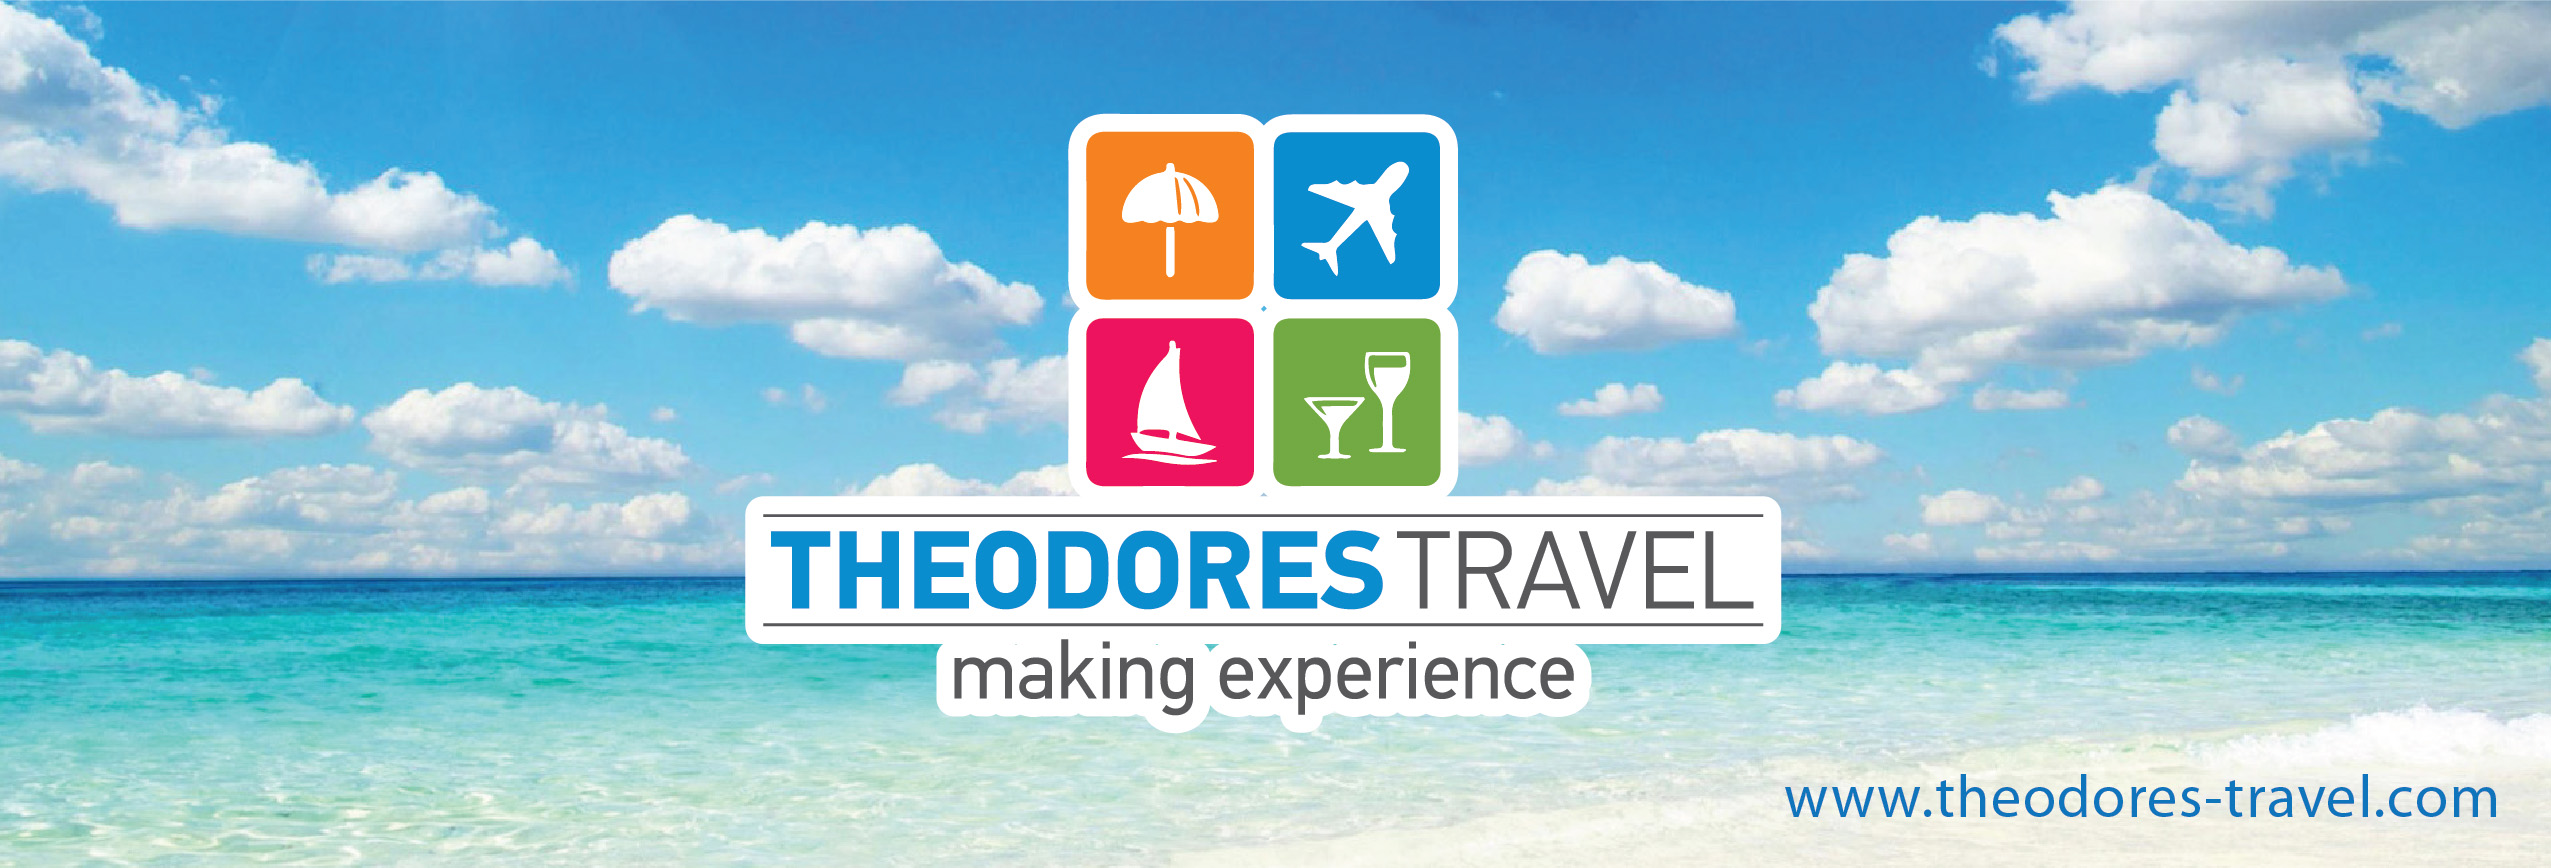 THEODORES TRAVEL